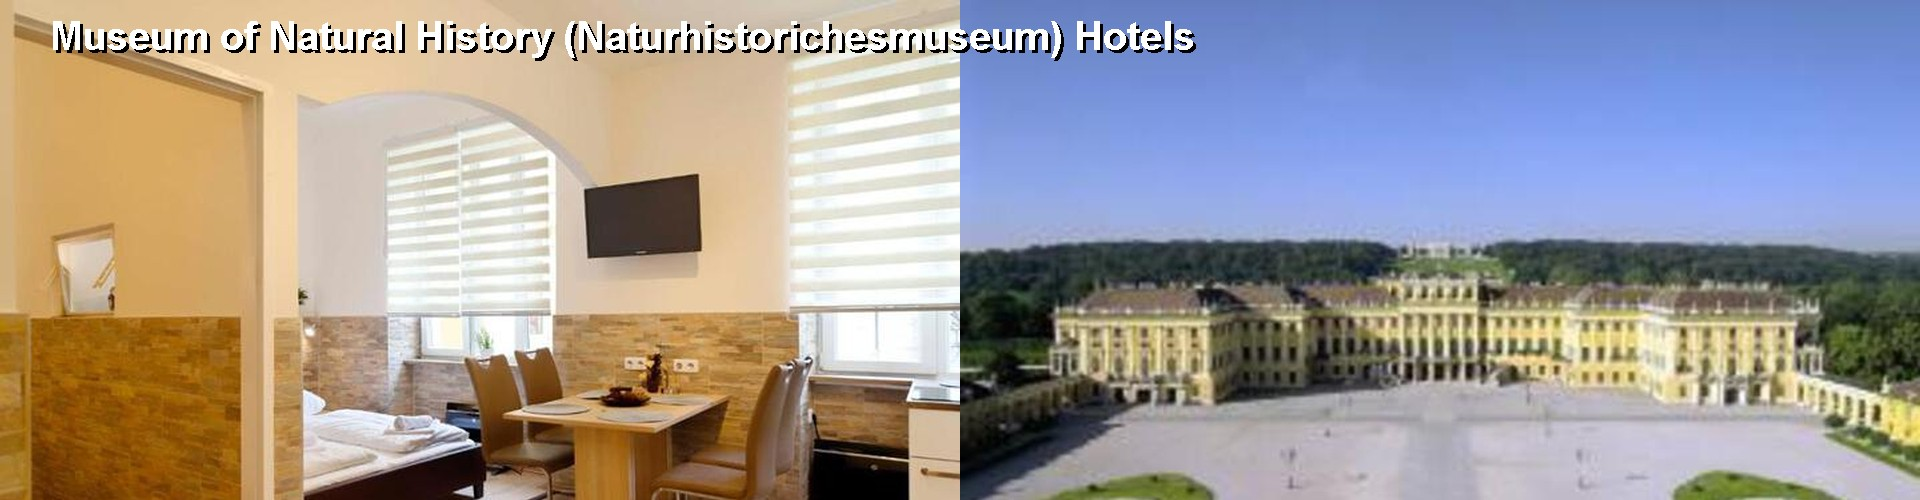 5 Best Hotels near Museum of Natural History (Naturhistorichesmuseum)